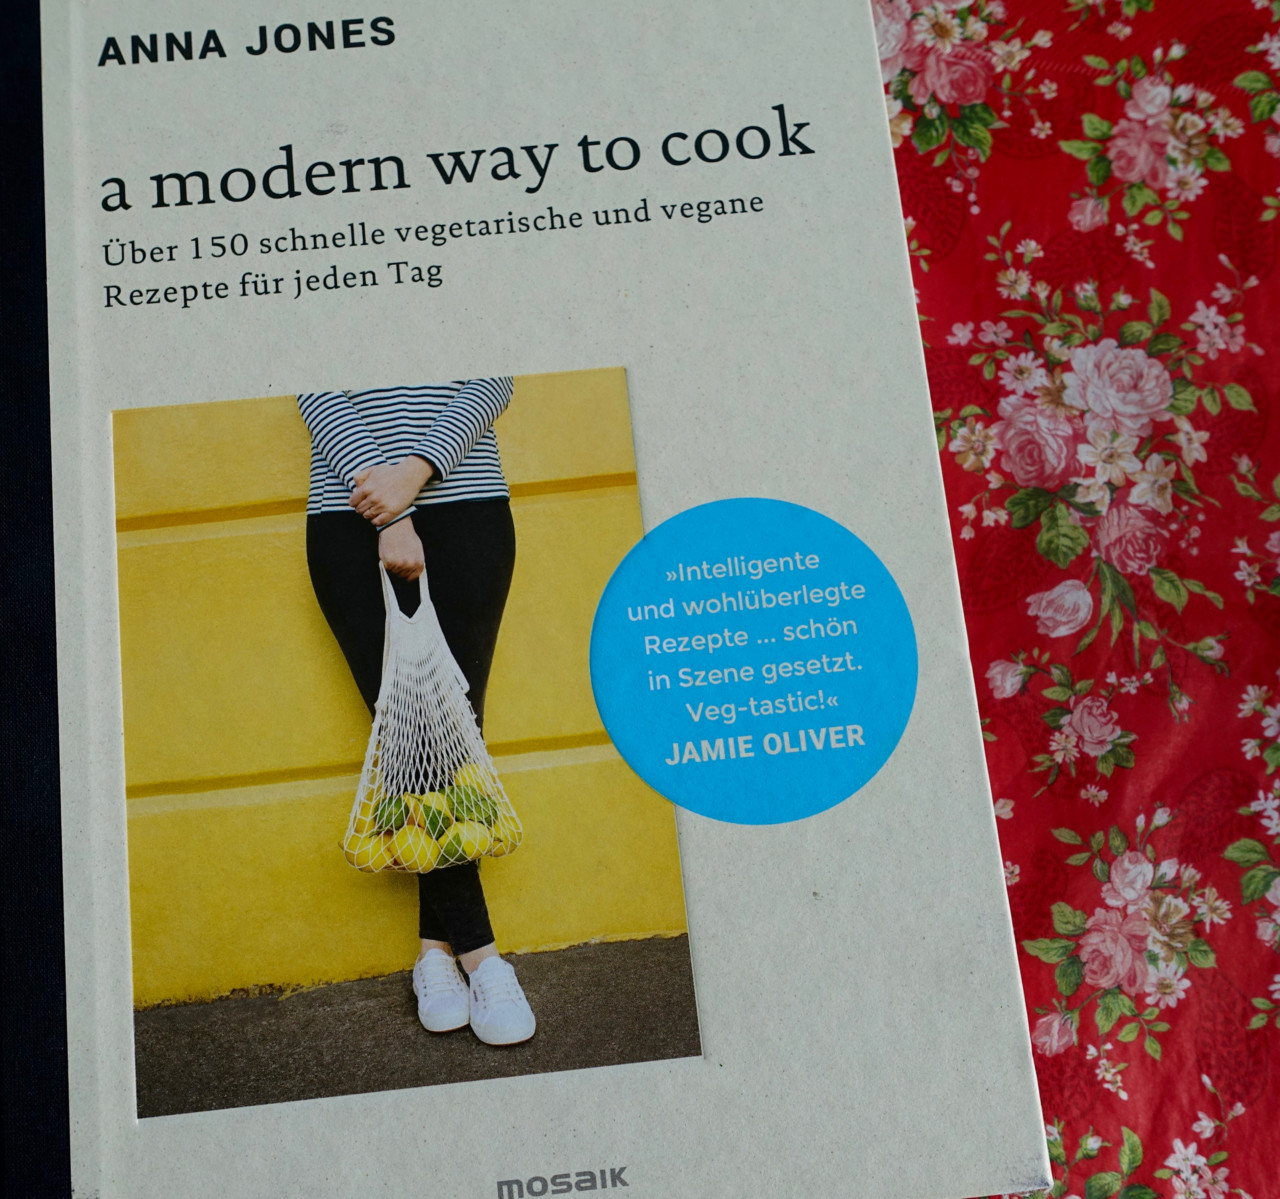 A modern way to cook: Vegetarisches Kochbuch von Anna Jones